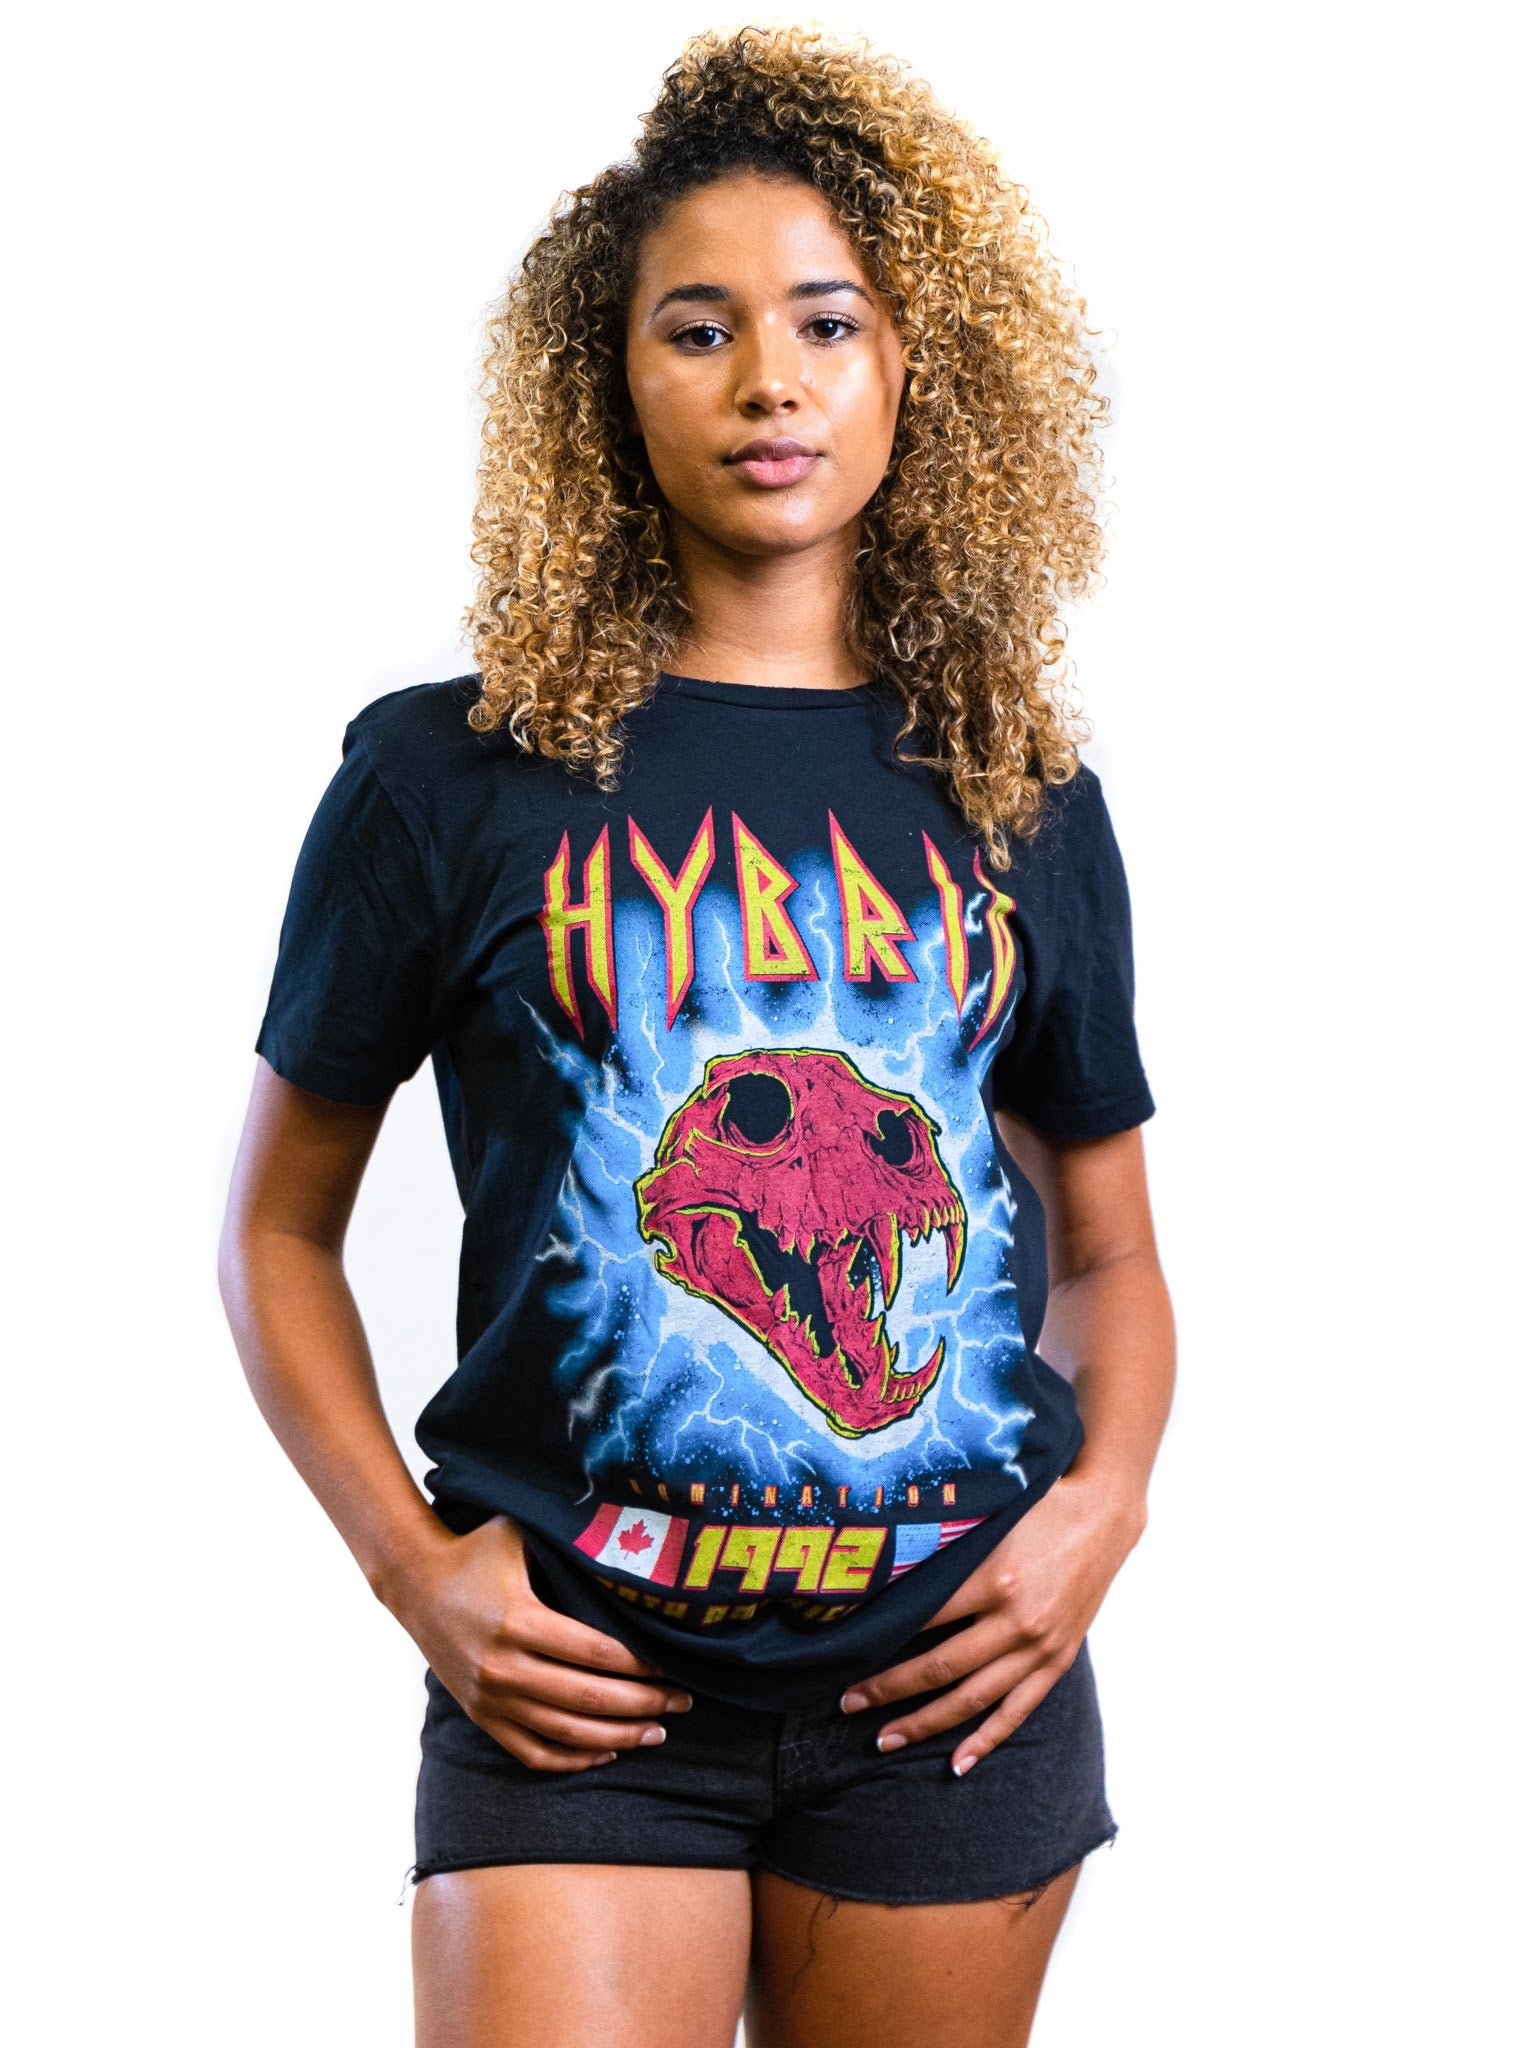 Hybrid North American Tour T-Shirt